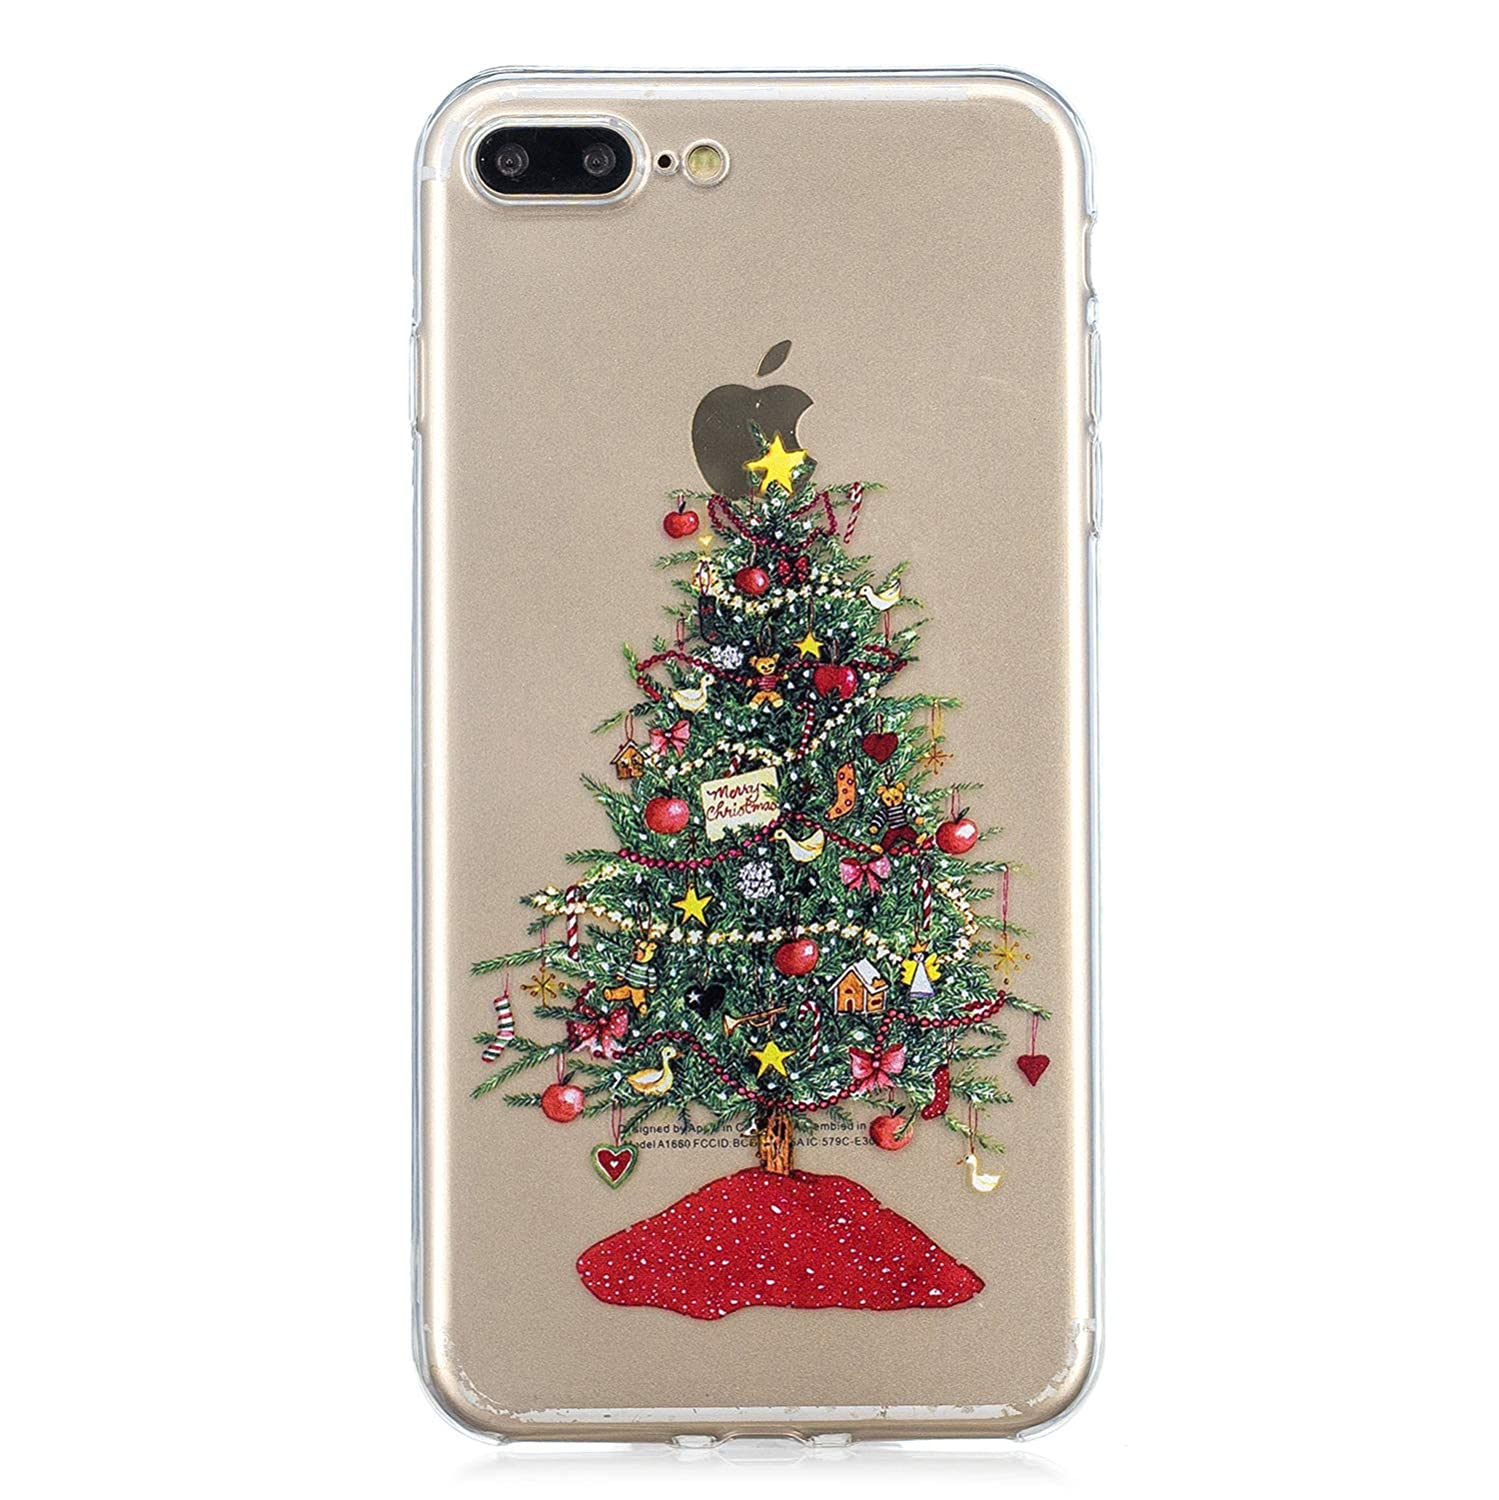 359a92f87f Merry Christmas Series New Fashion Painted Christmas Tree Pattern  Transparent TPU Silicone Protective Ultra Slim Clear Case for iPhone 7 Plus  /8 Plus,SKYXD ...